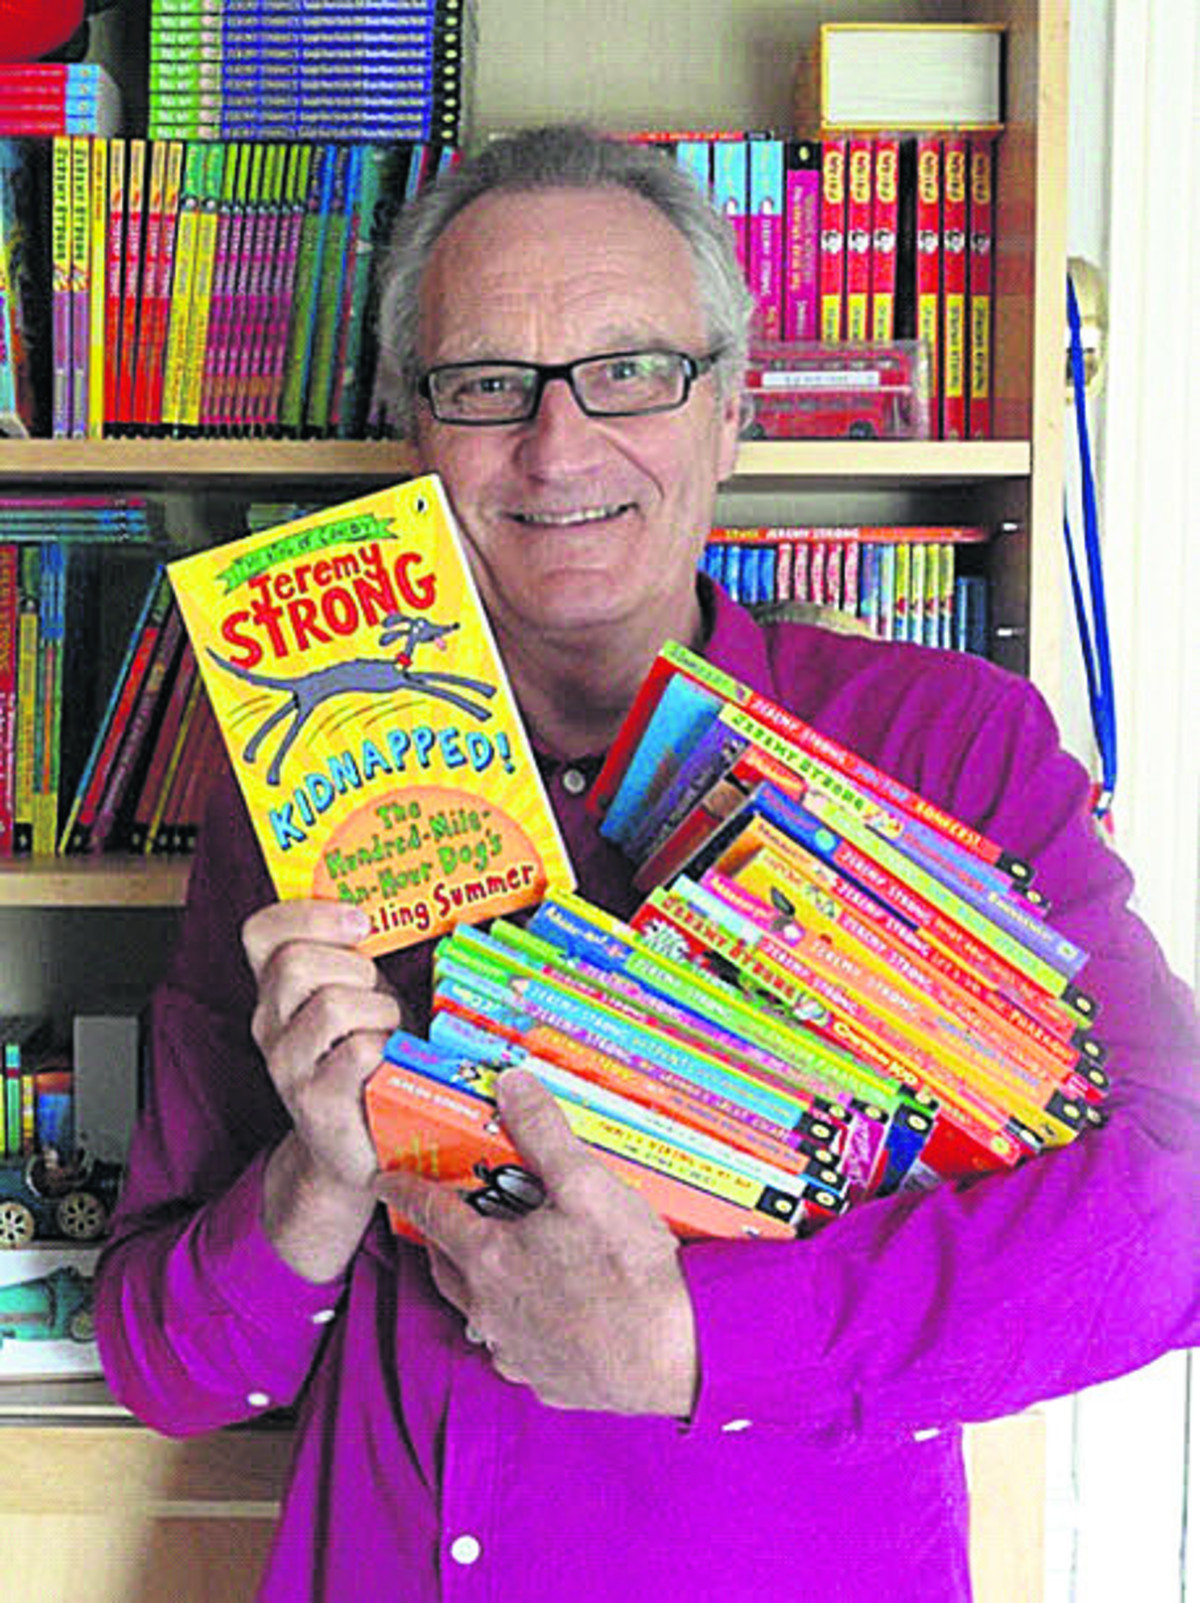 Bradford on Avon children's author Jeremy Strong celebrates the publication of his 100th b